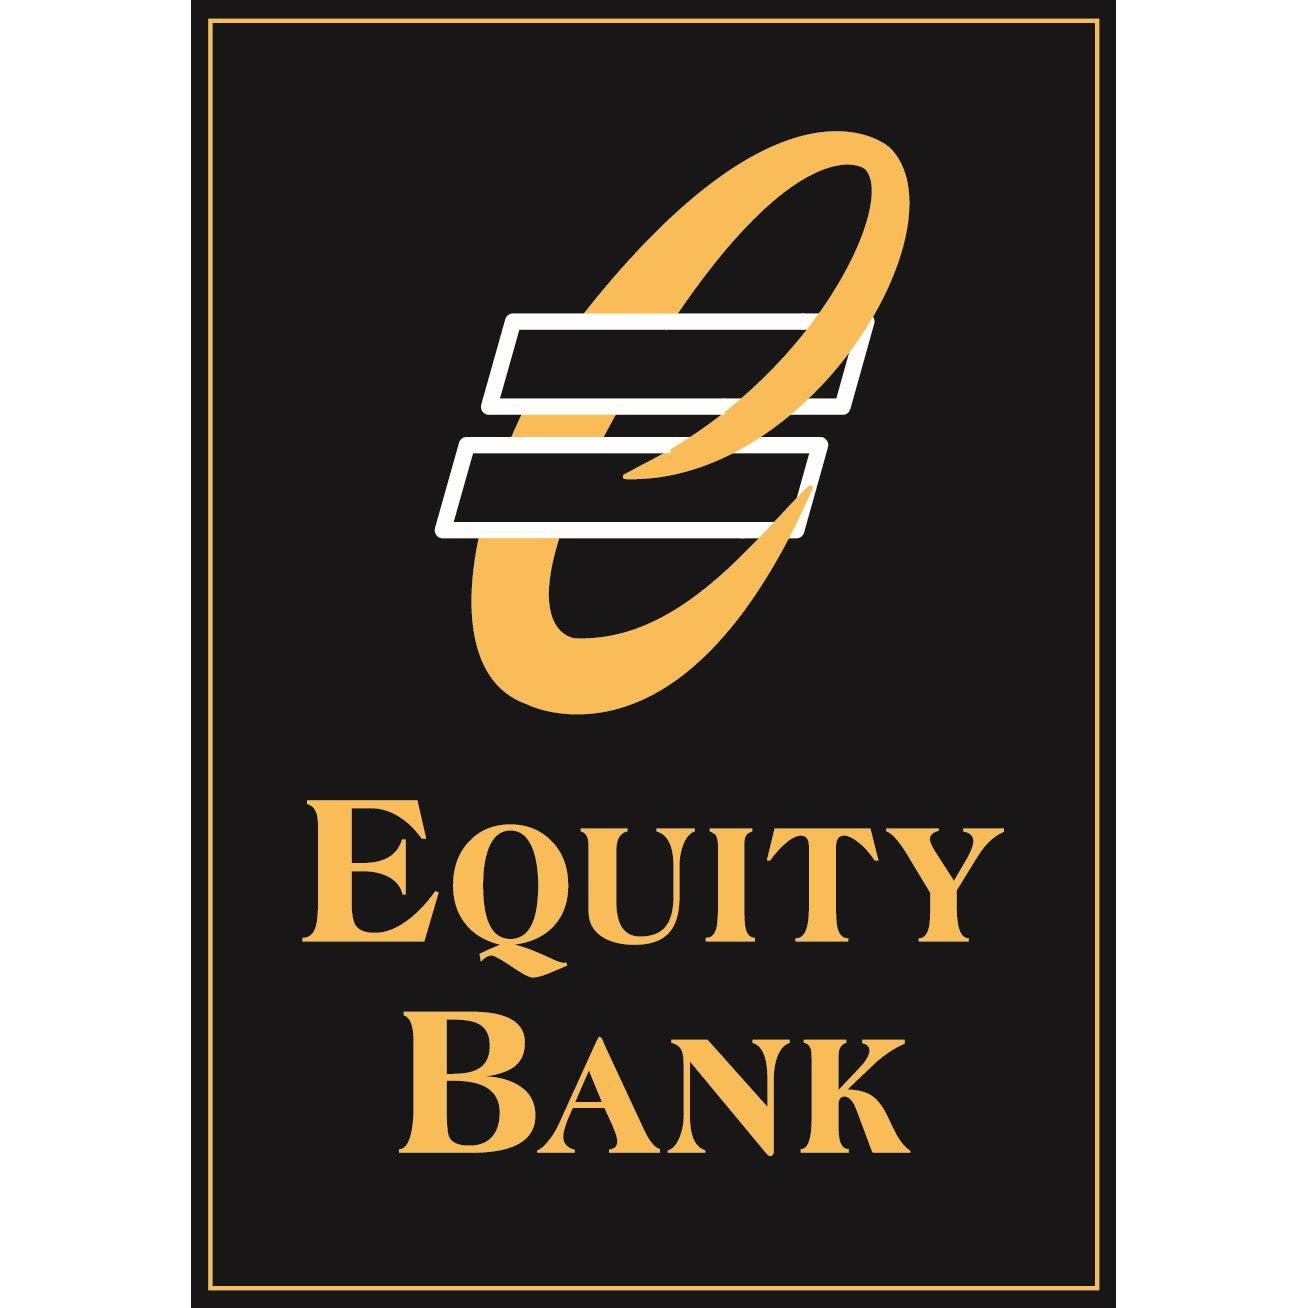 Equity Bank - Ponca City, OK - Banking